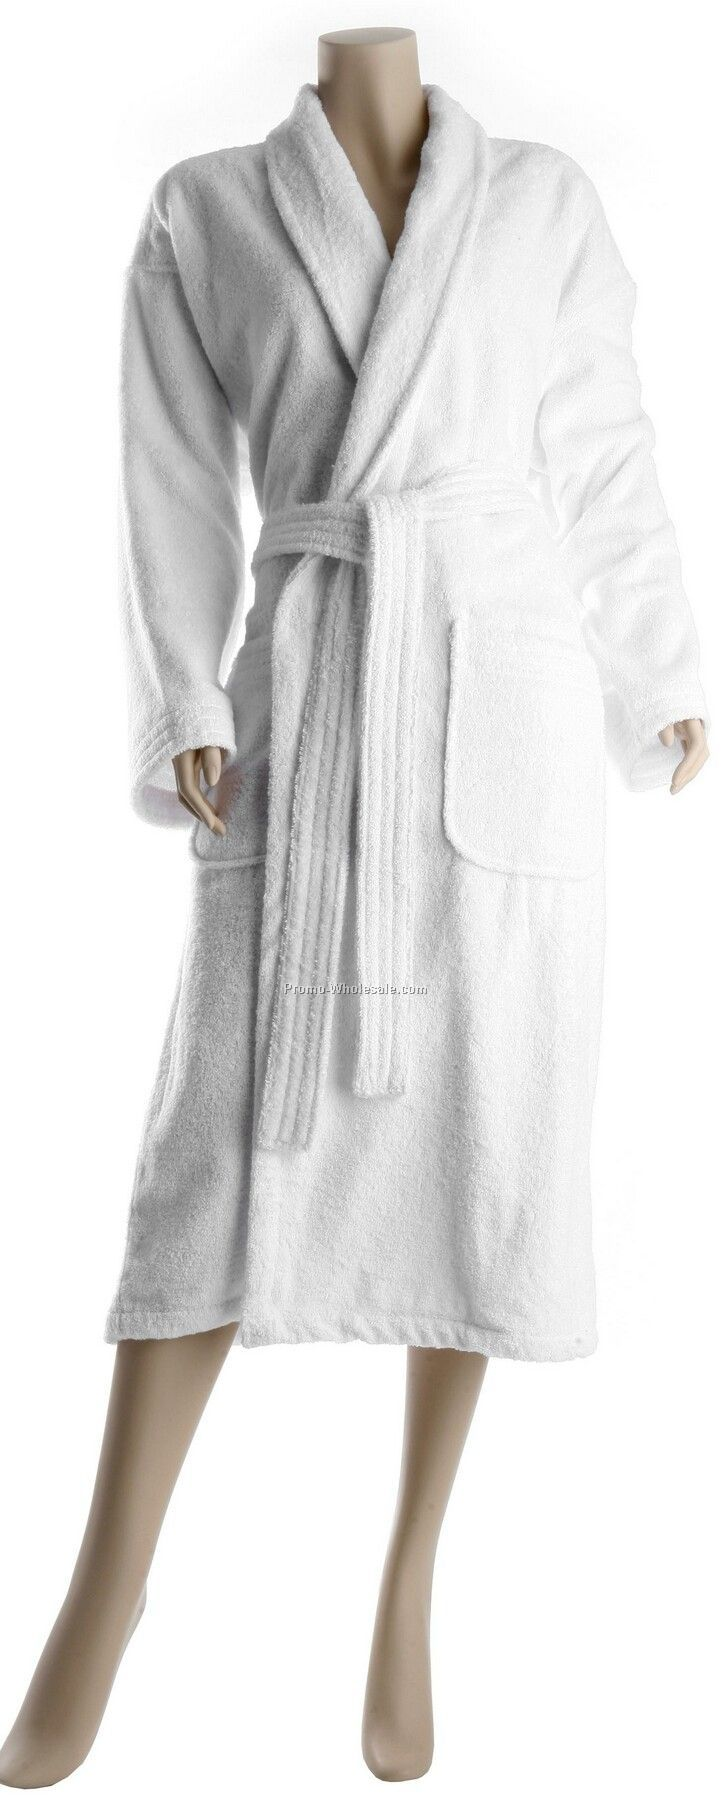 "52"" X-long Luxury Loop Terry Turkish Pleat Back Hotel Shawl Collar Robe"